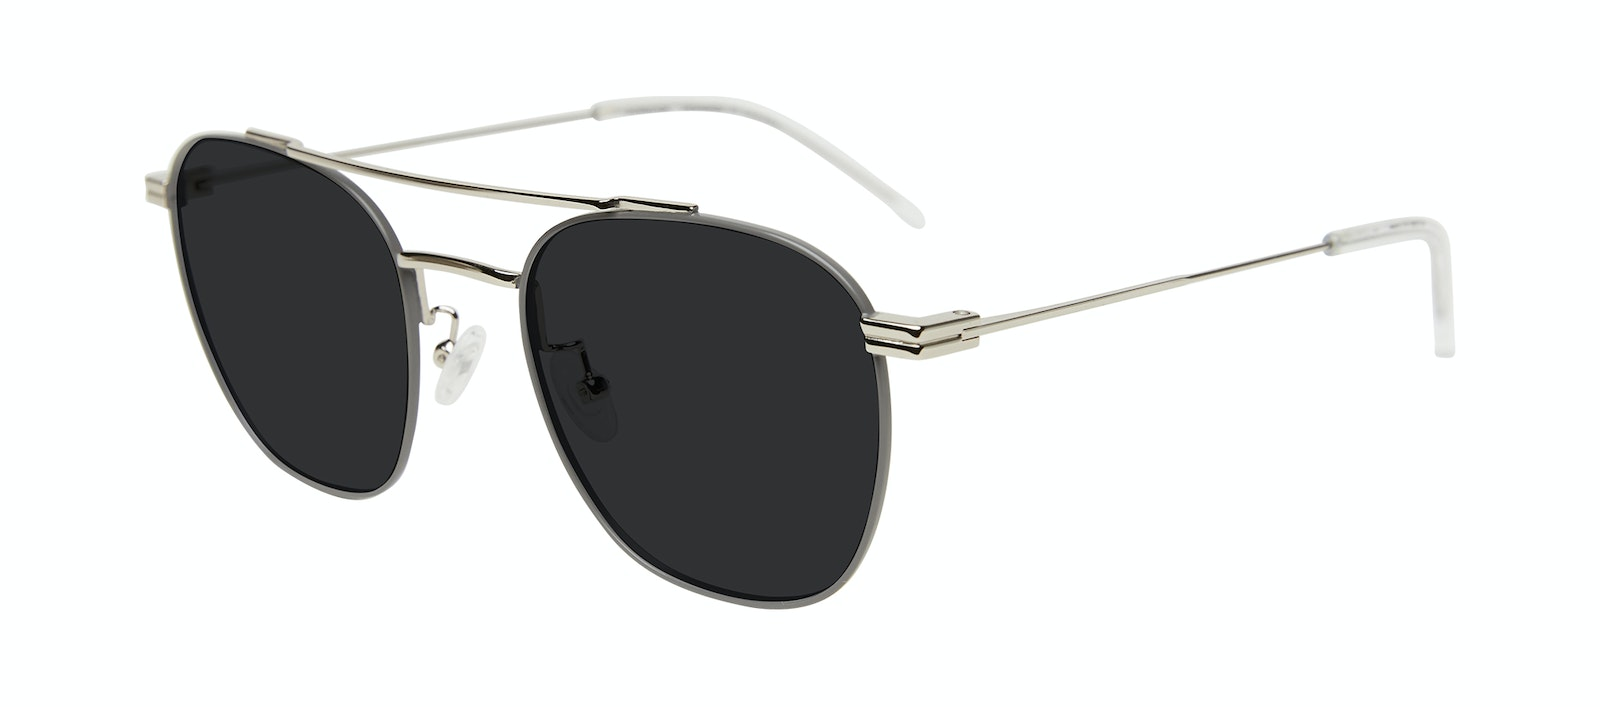 Affordable Fashion Glasses Aviator Sunglasses Men Miami Silver Tilt